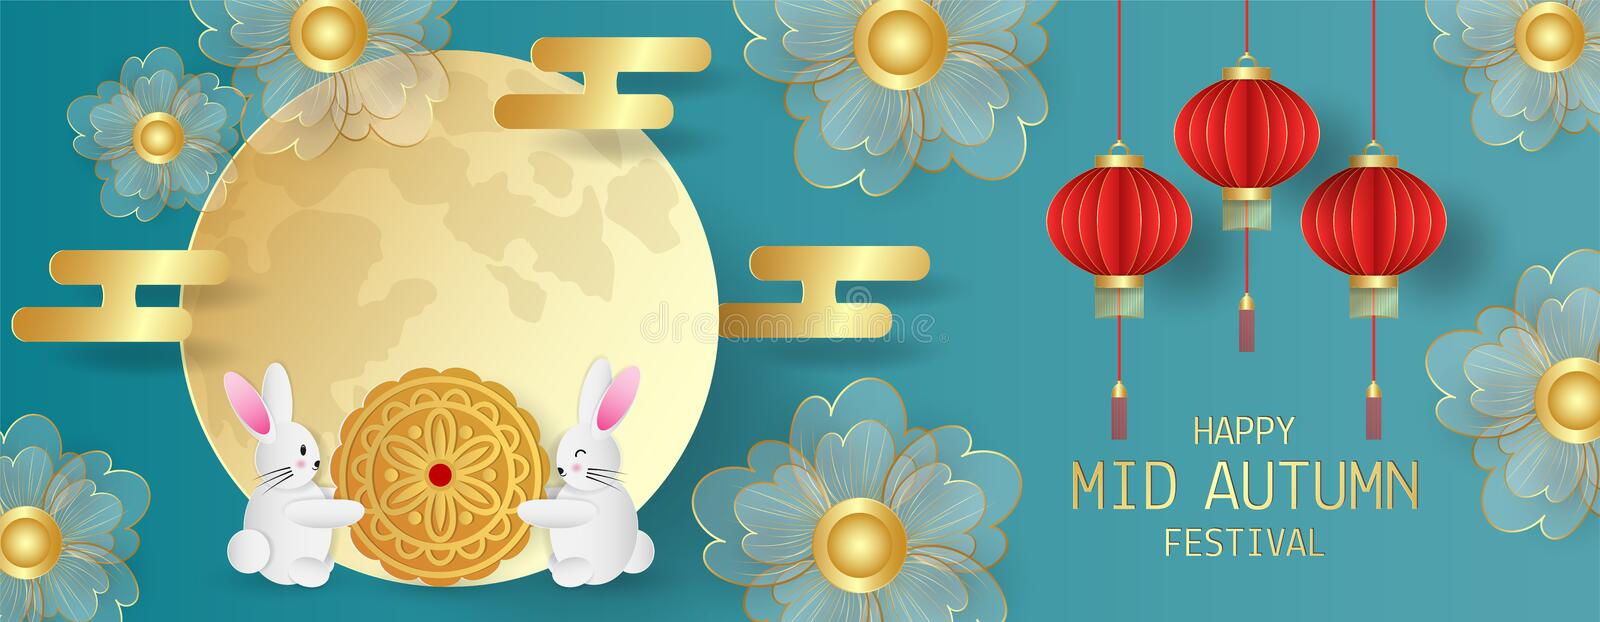 Mid Autumn festival greeting card with cute rabbit with moon cake, flowers, red lantern and full moon on green background. Vector illustration royalty free stock photo